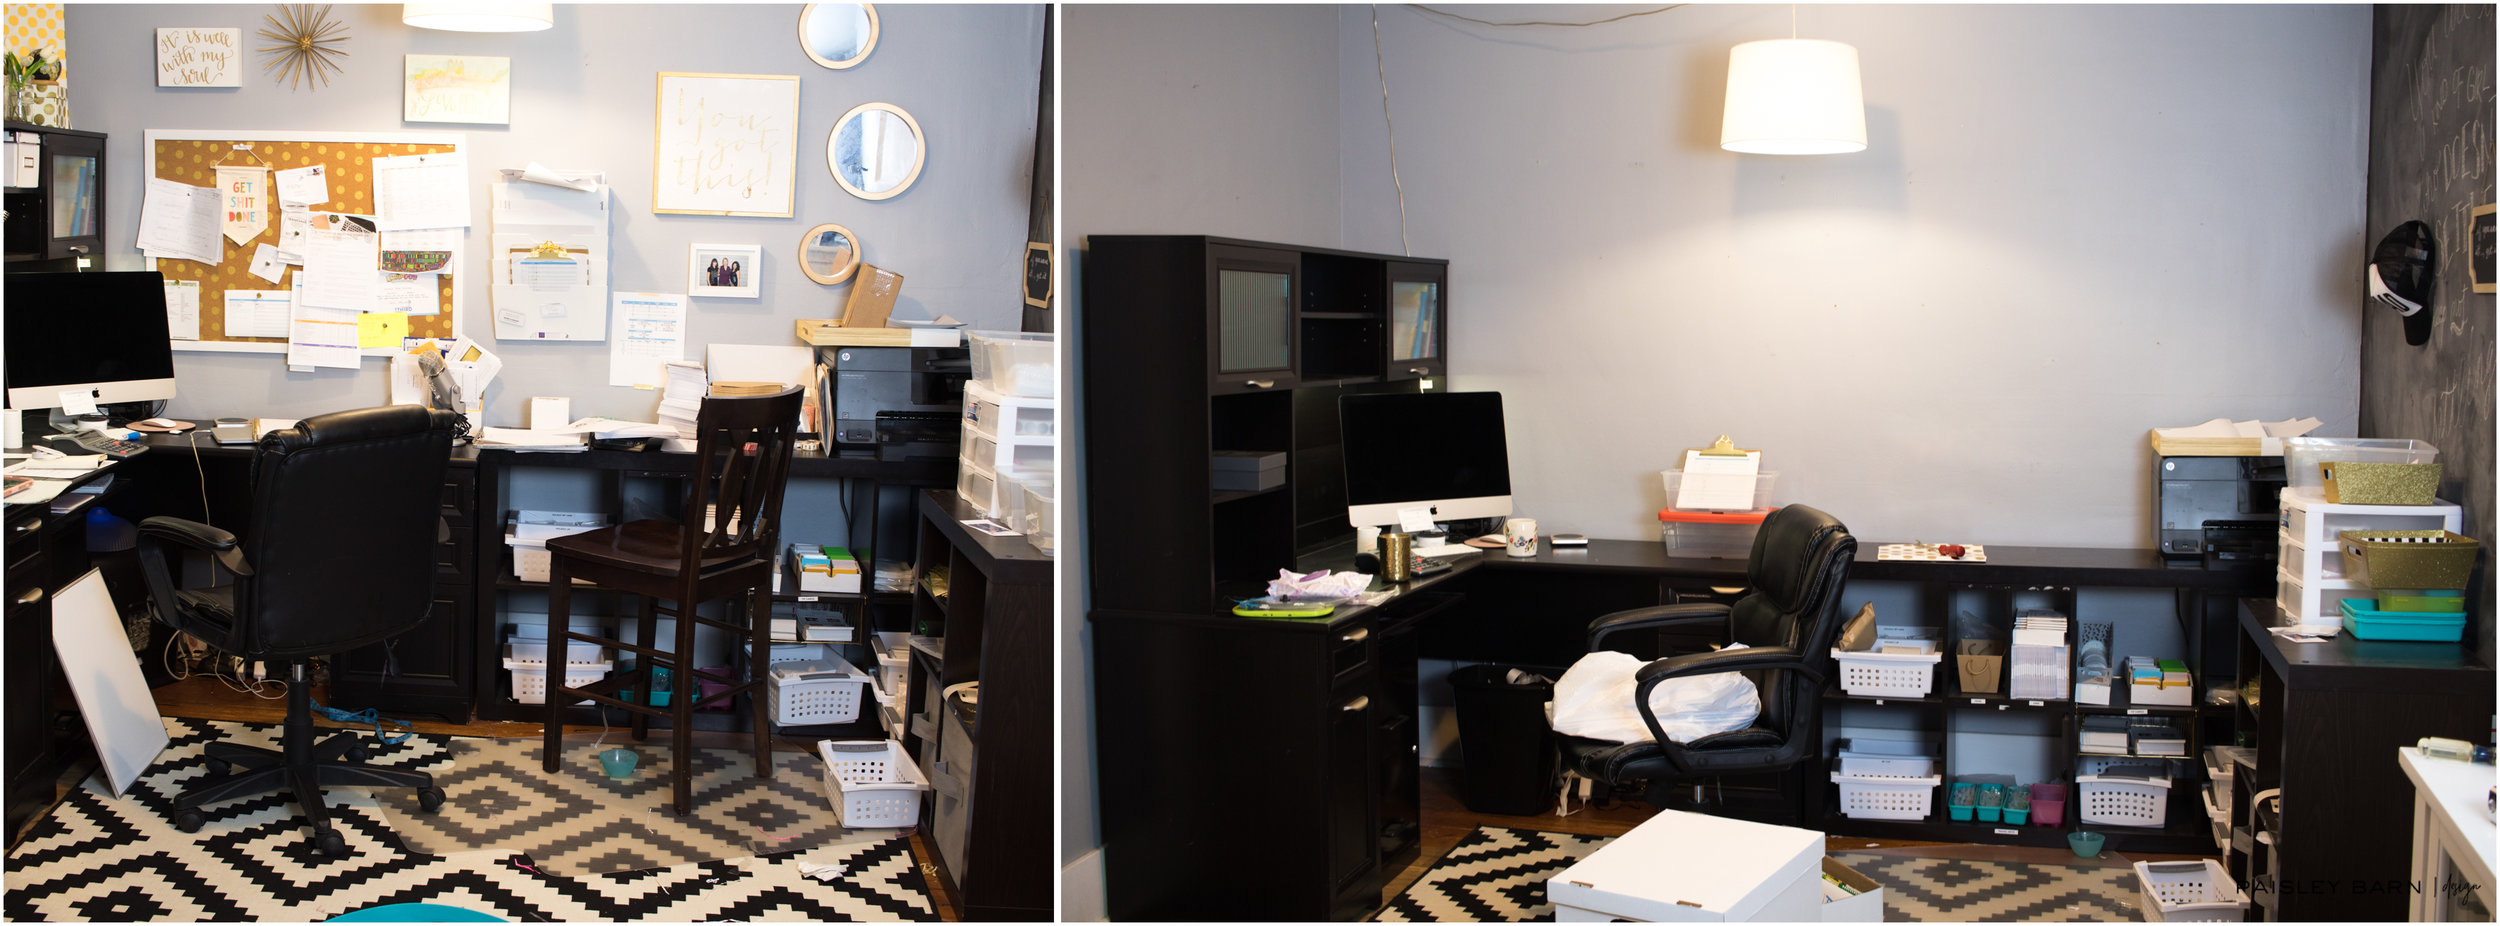 The cluster of an office I was working with before we started. SEE! It was necessary, I don't even know how I was productive in this mess!